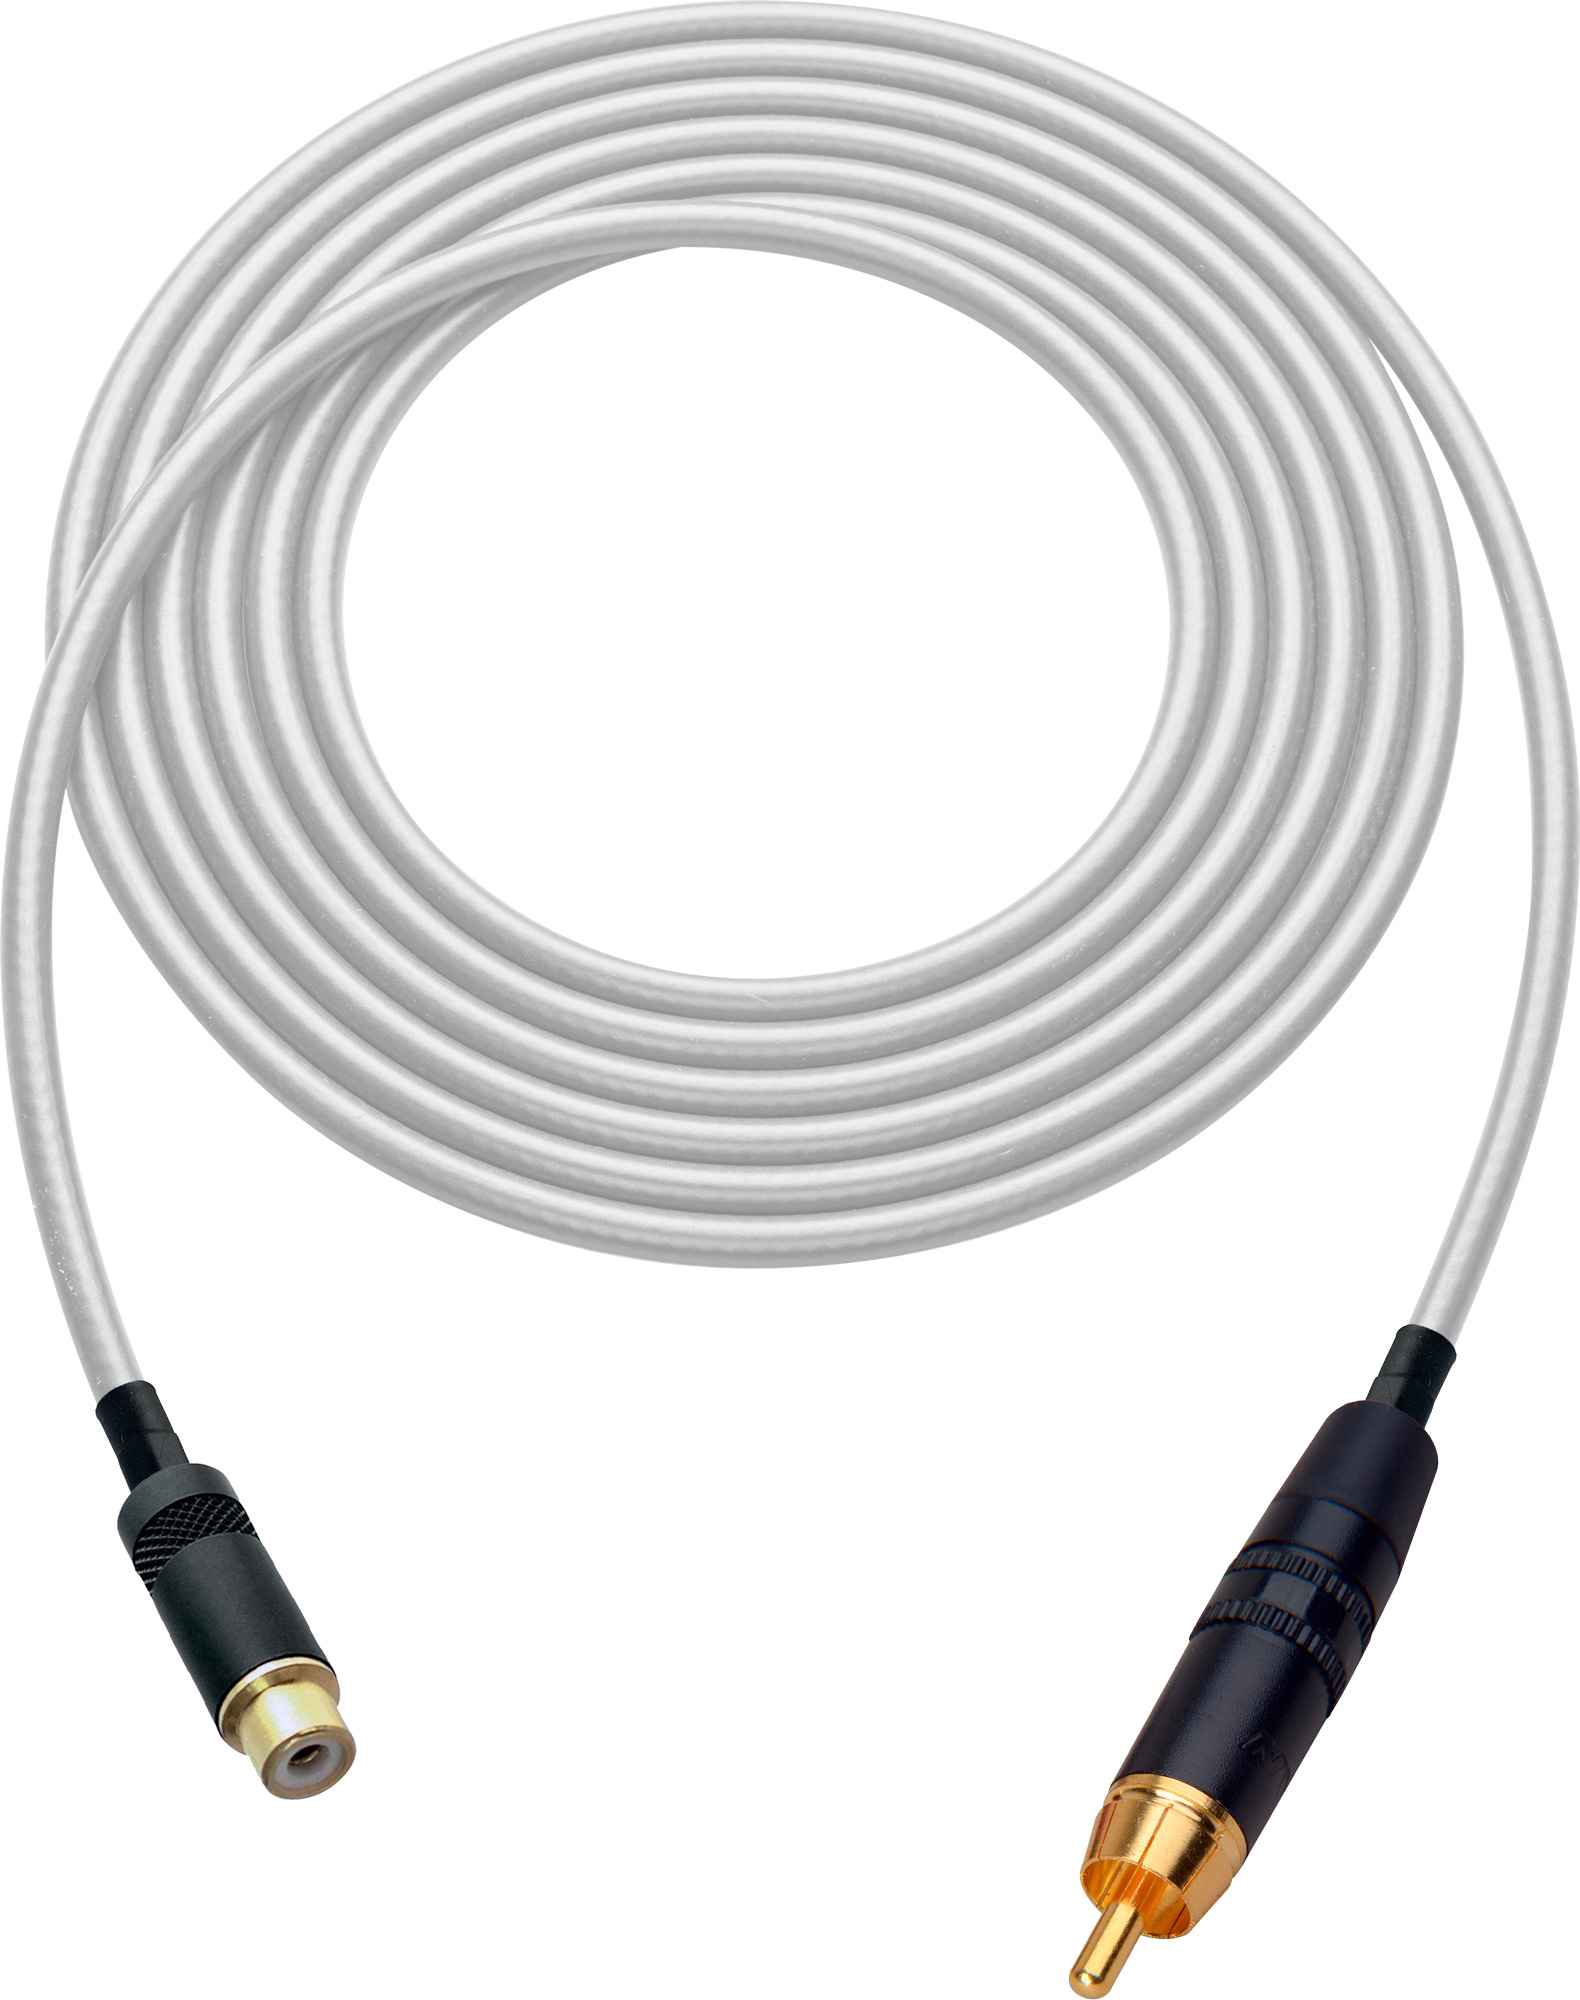 Laird HDAV-EXT-15-WE Belden 1505A RCA M to F Extension Cable For Audio or HD Video - 15 Foot White